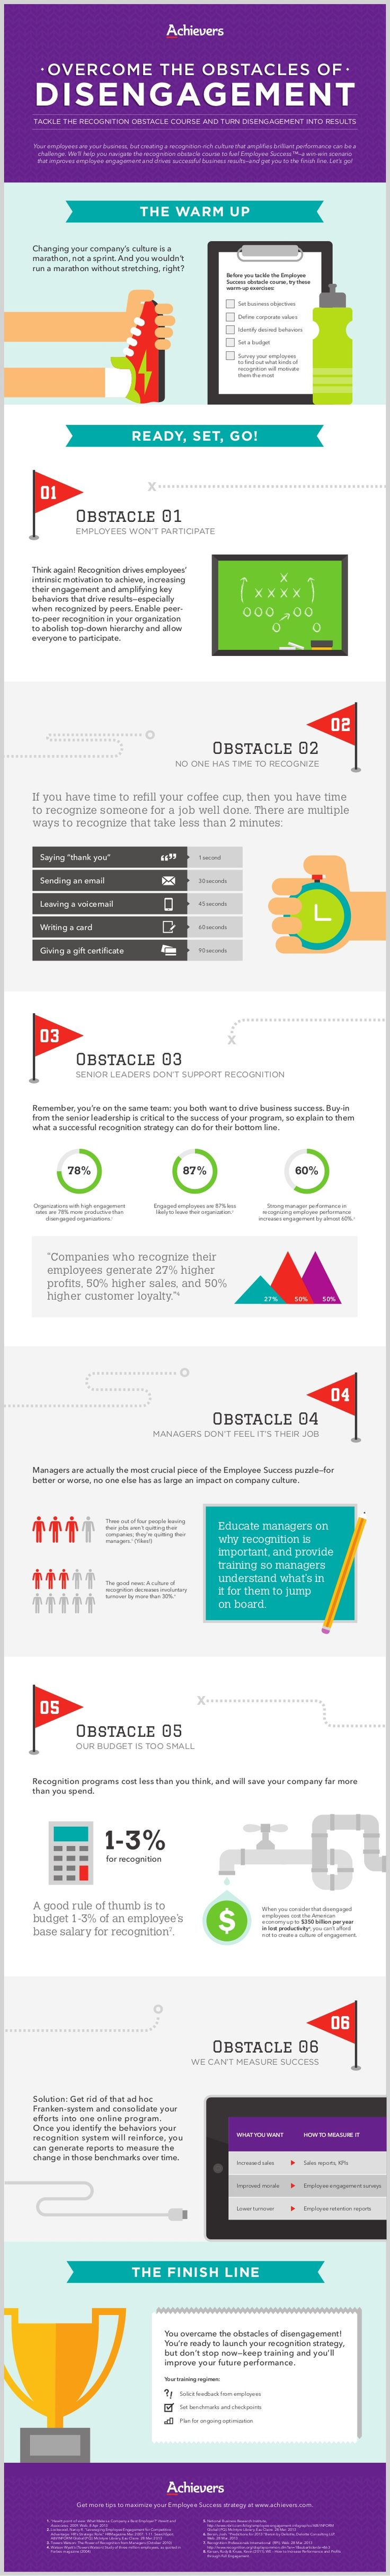 Employee Success Obstacle Course Infographic